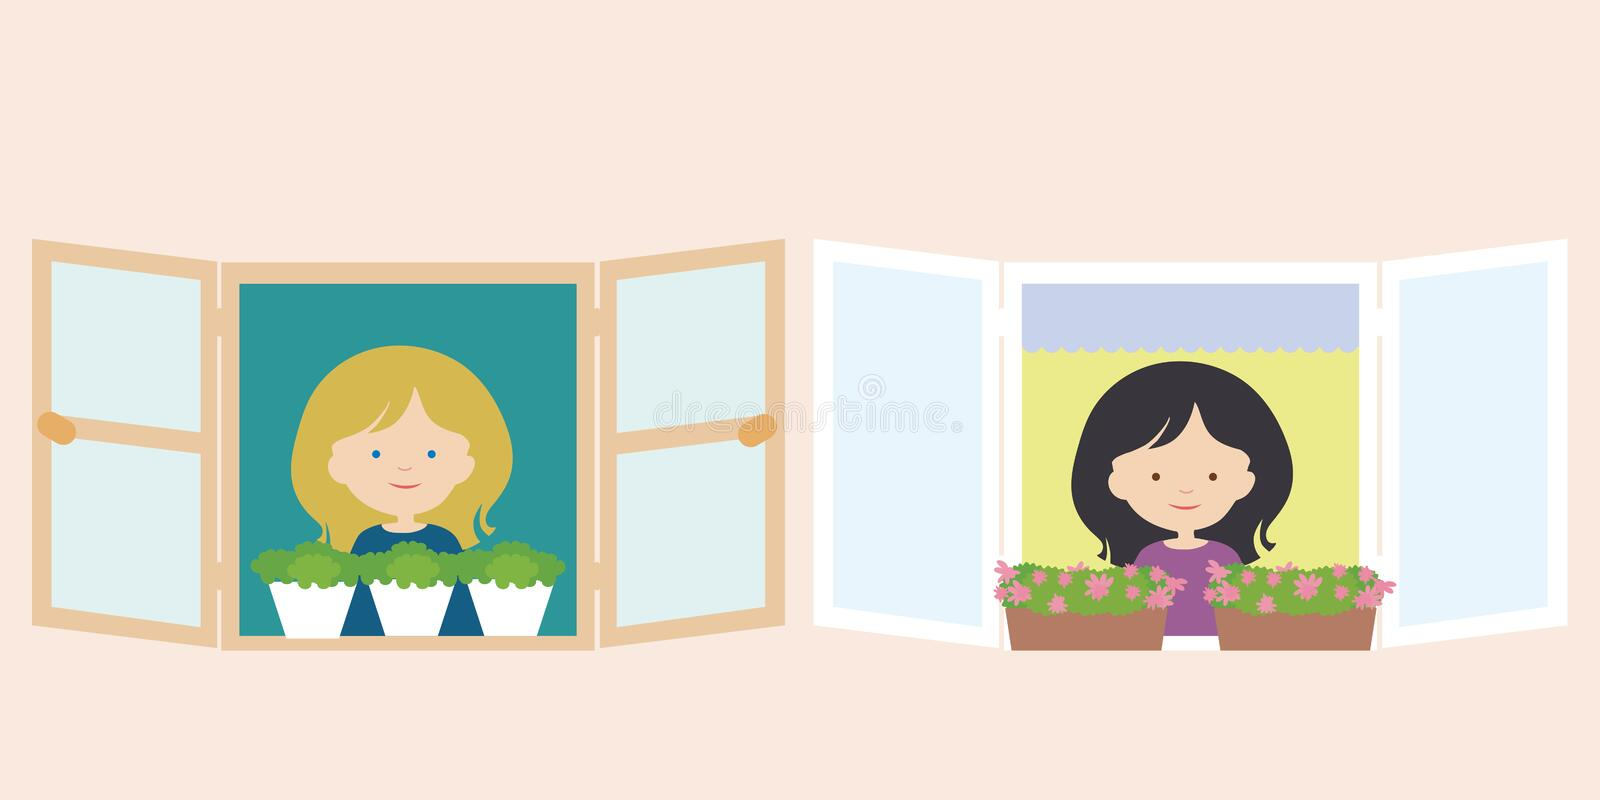 Two women, neighbors, standing in window with flower pot and smiling. Vector stock illustration